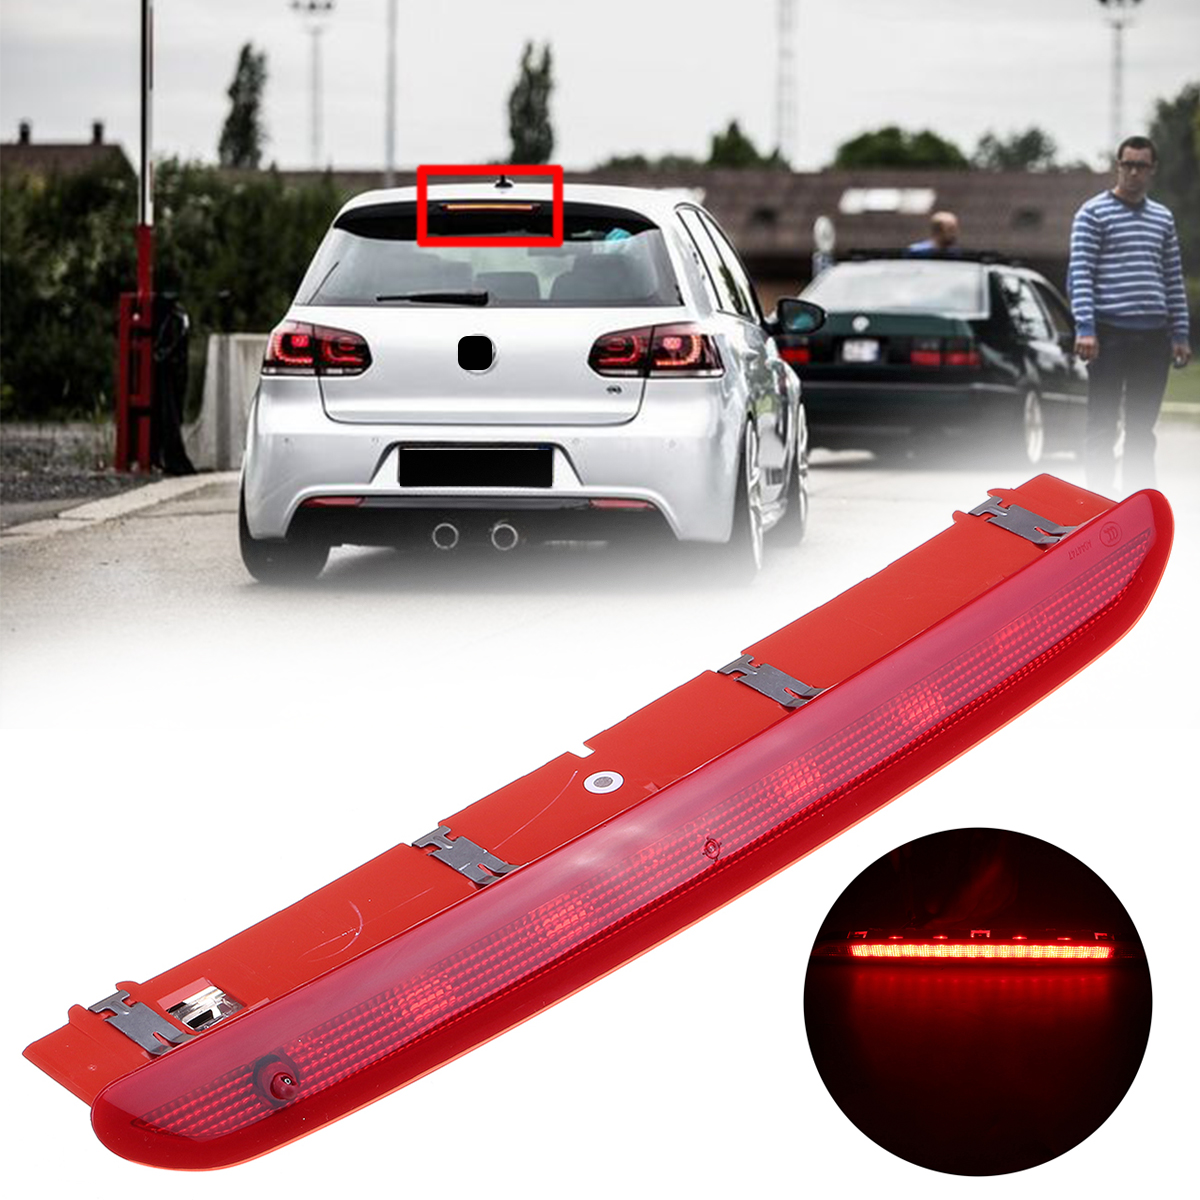 12V Car LED High Level Rear Third Brake Lights Tail Stop Lamp Wite+Red for VW Golf MK 5 6 Gti Rabbit for Passat B6 B7 for Tiguan пищевой контейнер tupperware